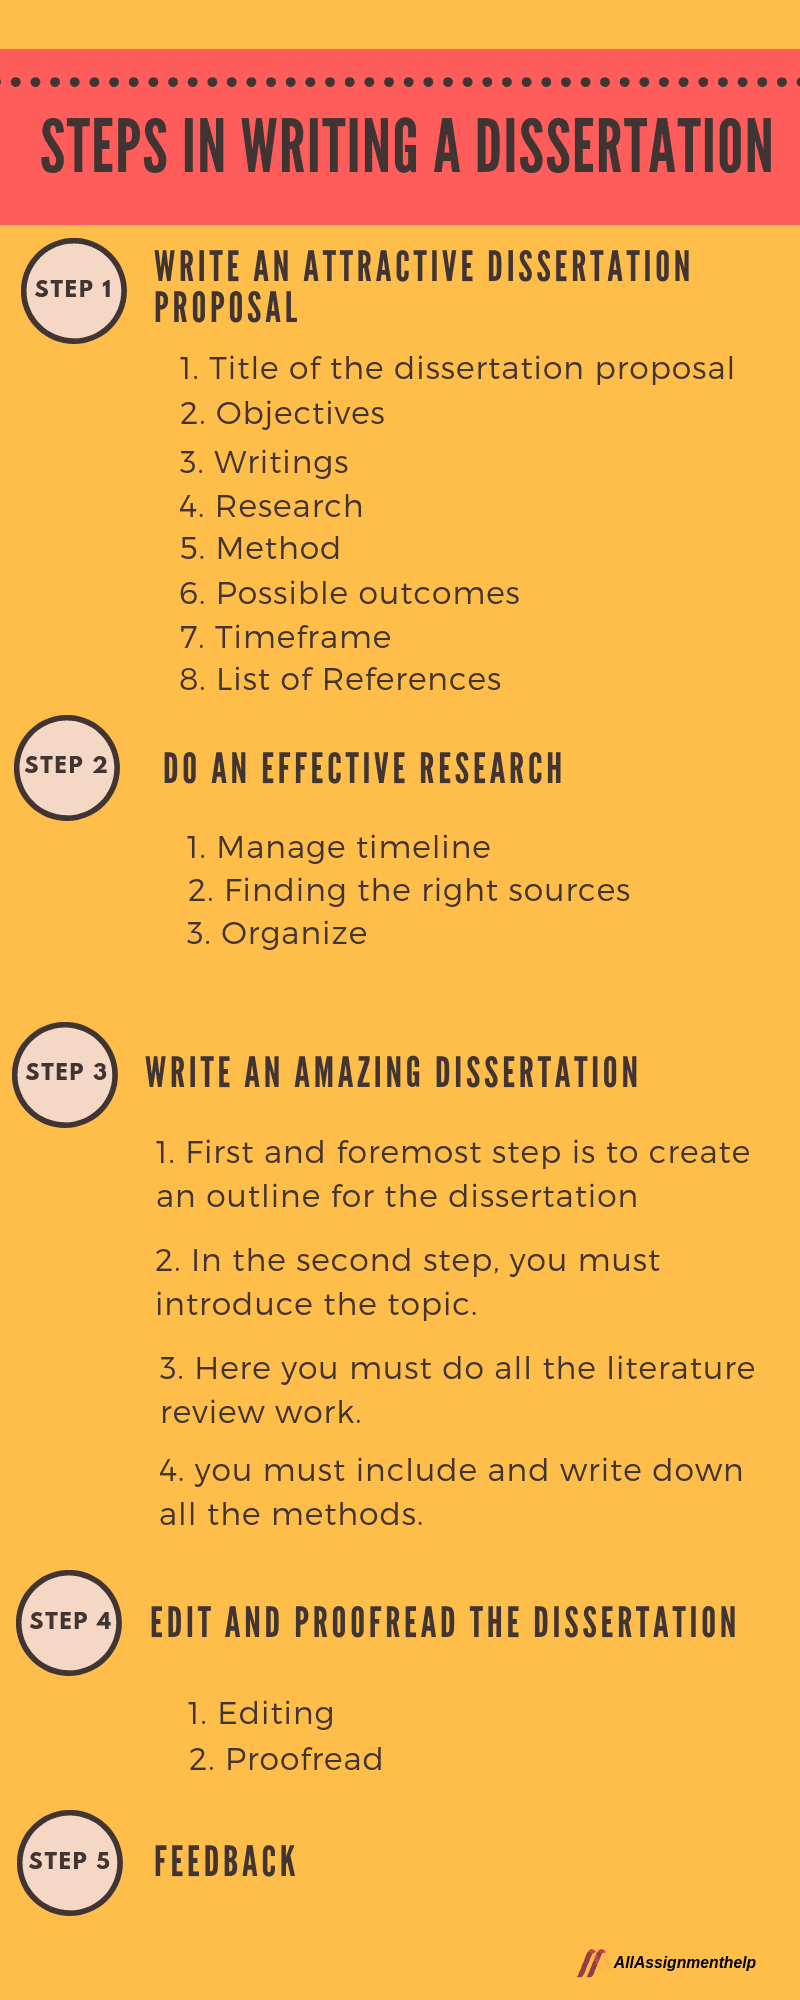 Best Dissertation Writing Services. Top-Ranked by Students!